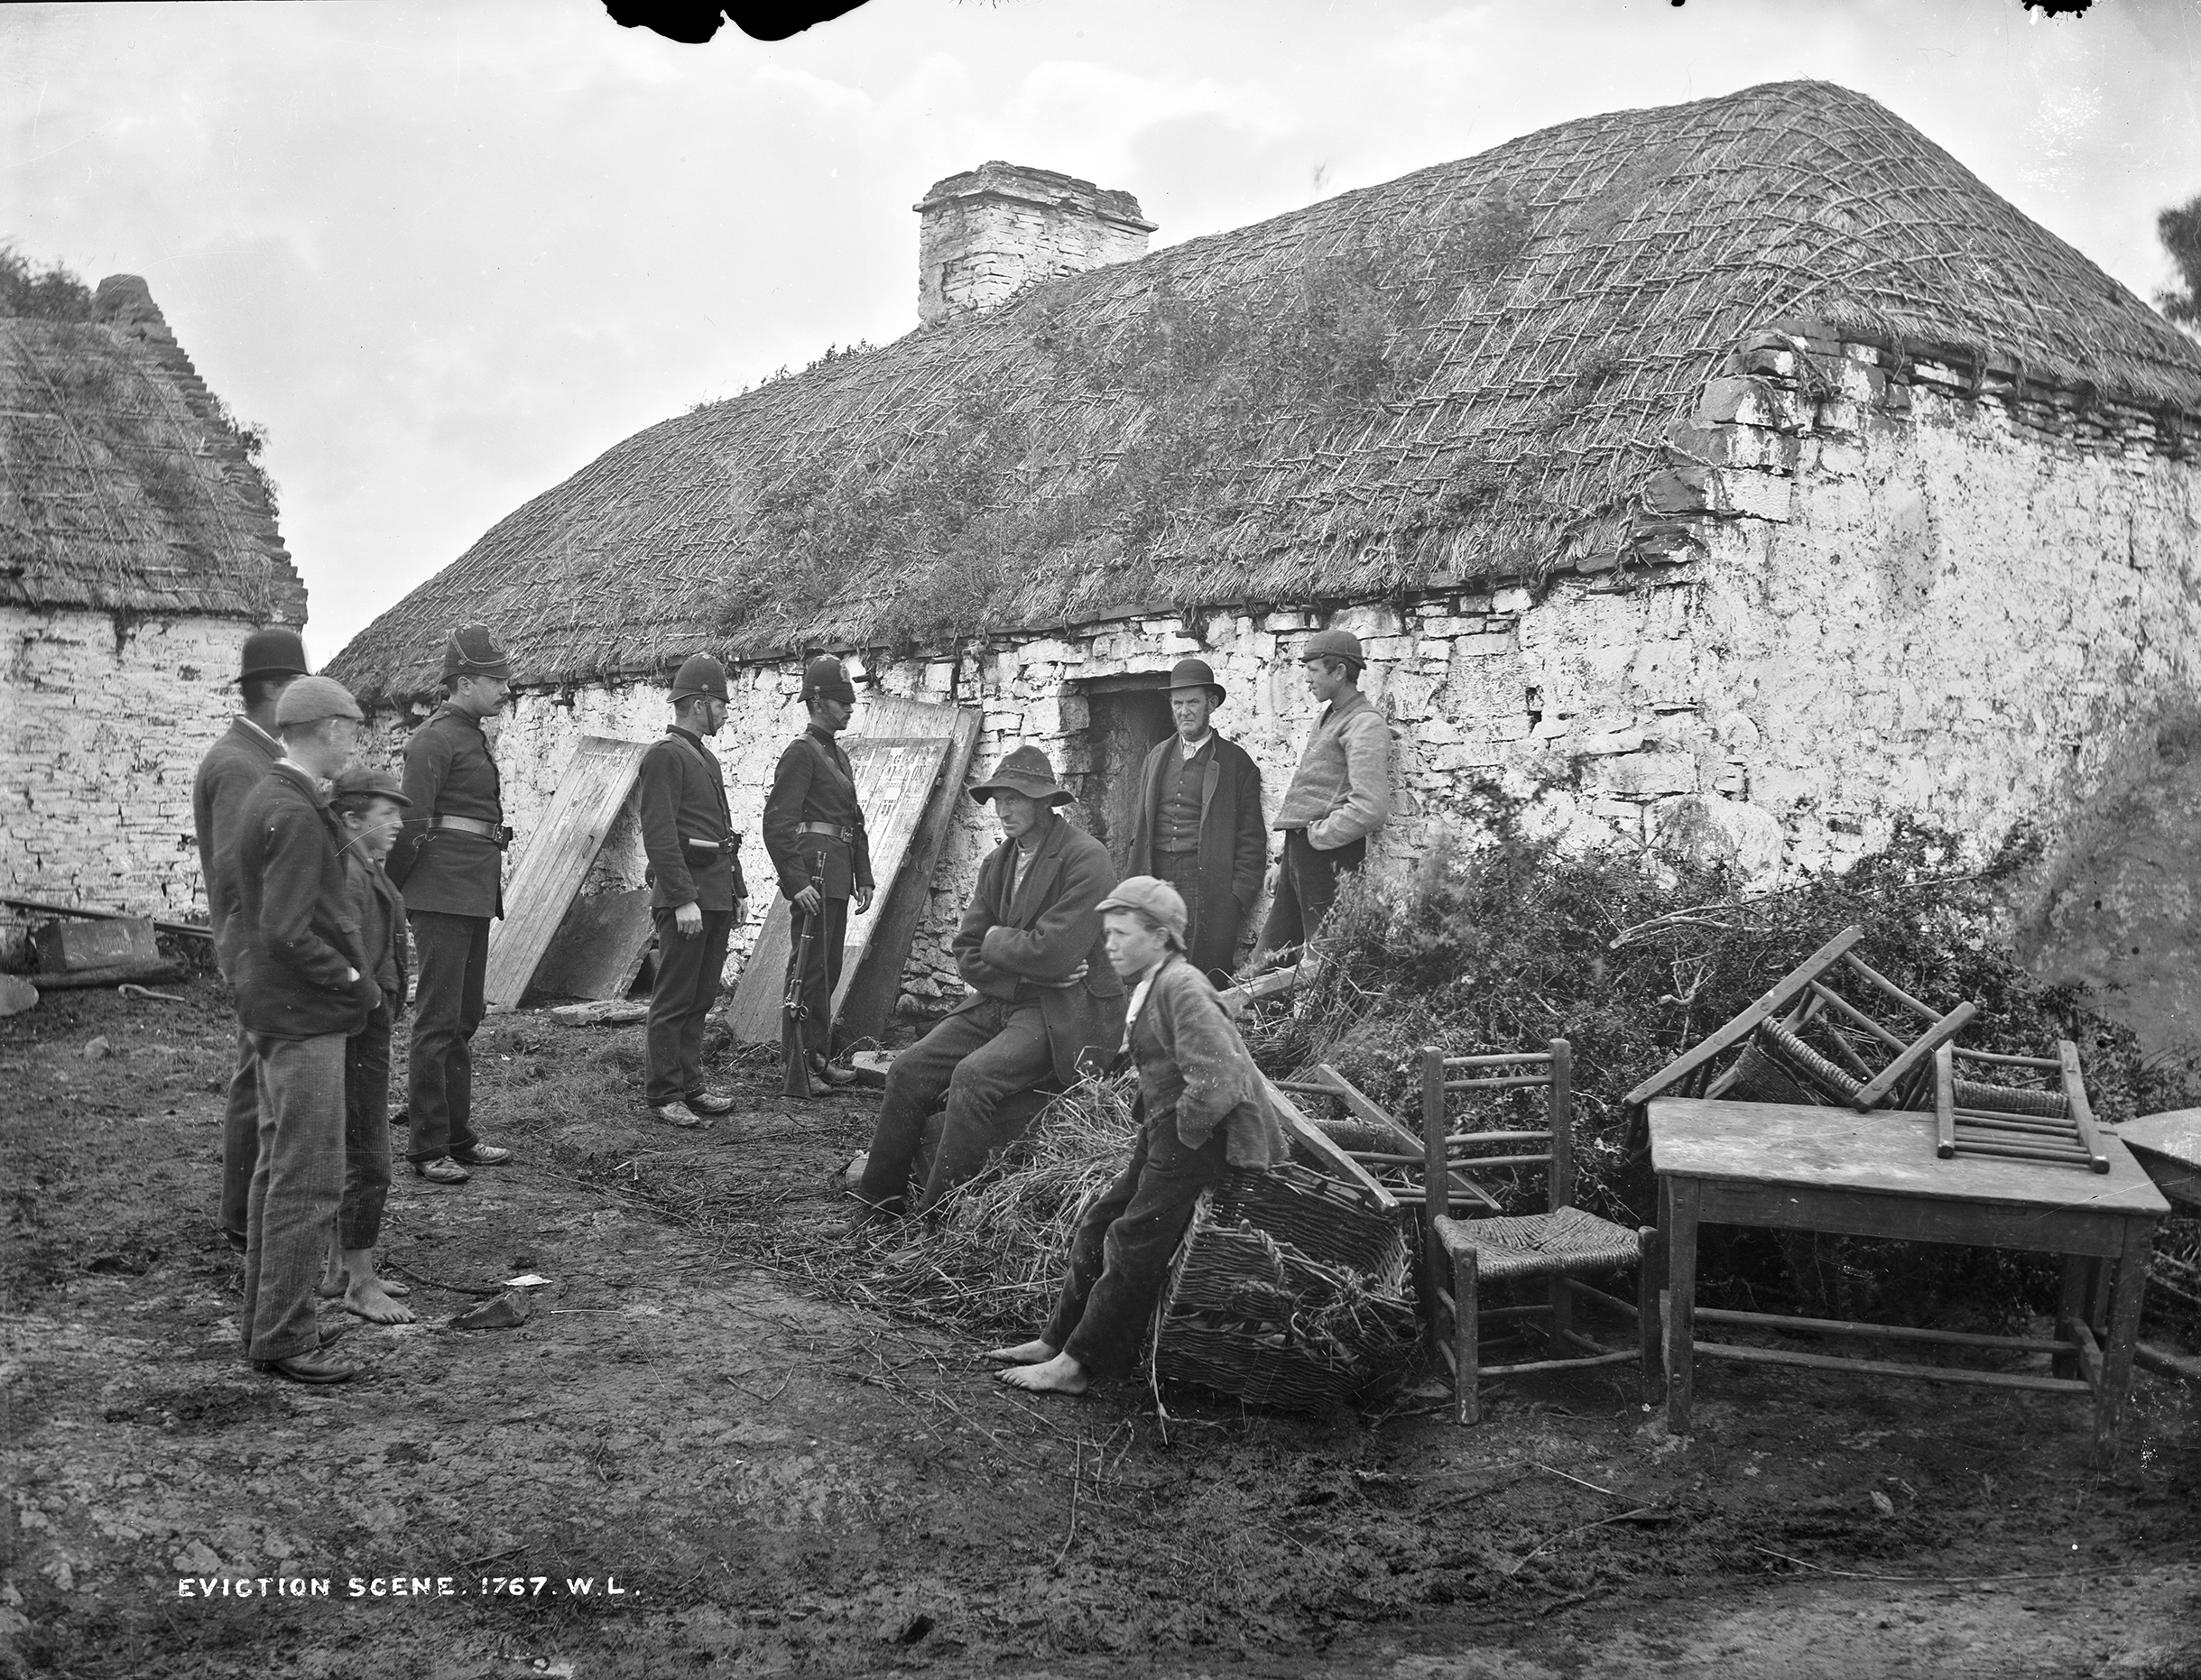 Major new famine documentary based on UCC book to screen on RTÉ